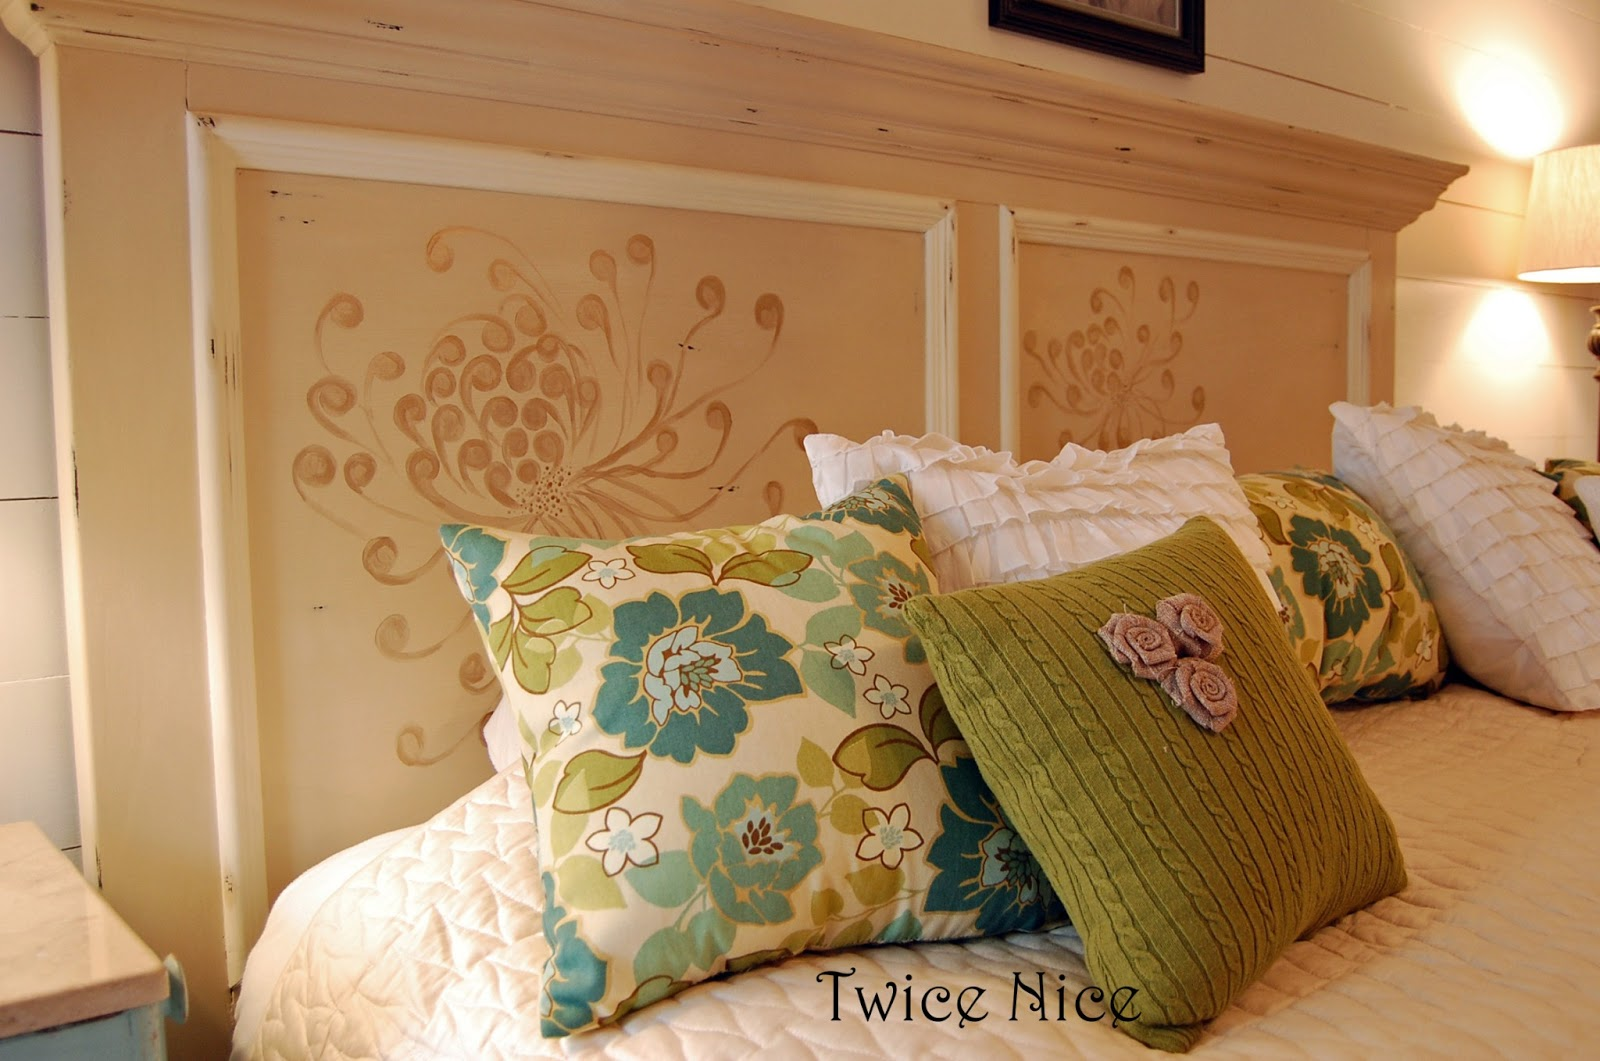 Twice Nice Master Bedroom Furniture Refinishes